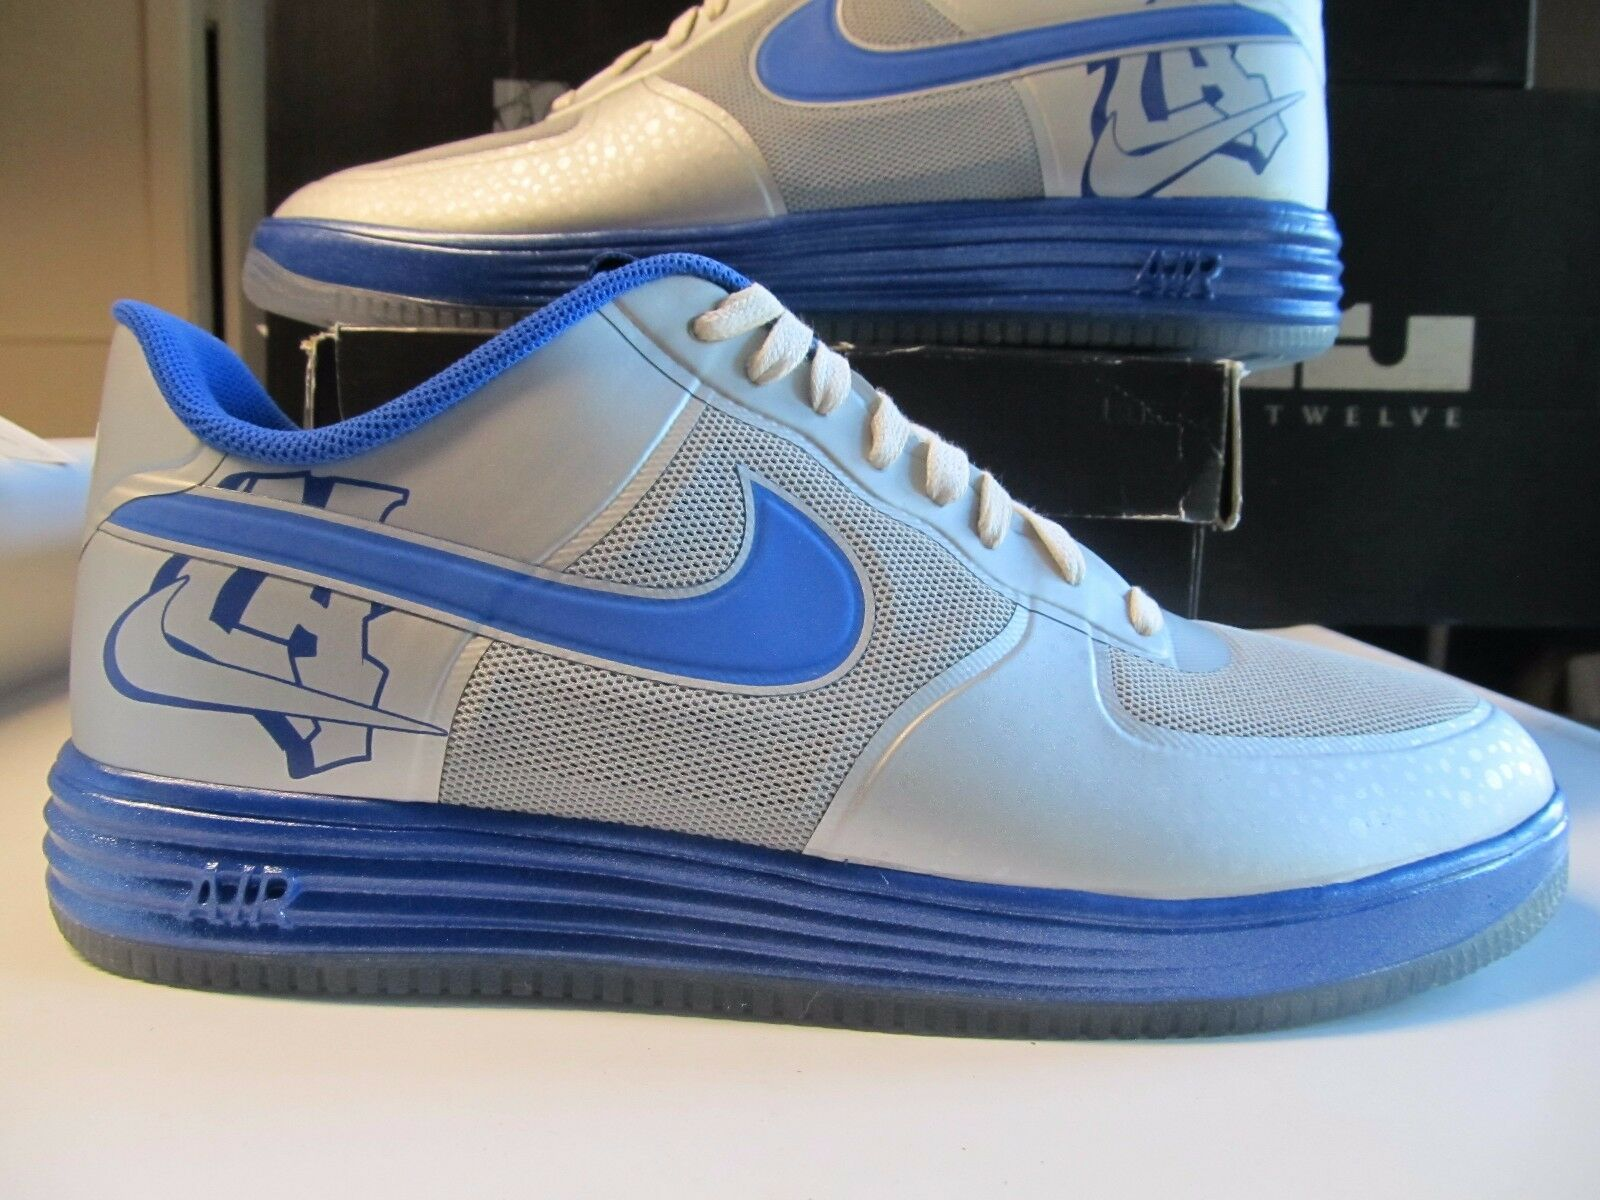 Nike Lunar Air Force 1 Fuse City la los Ángeles silver blue Real 14 577666 001